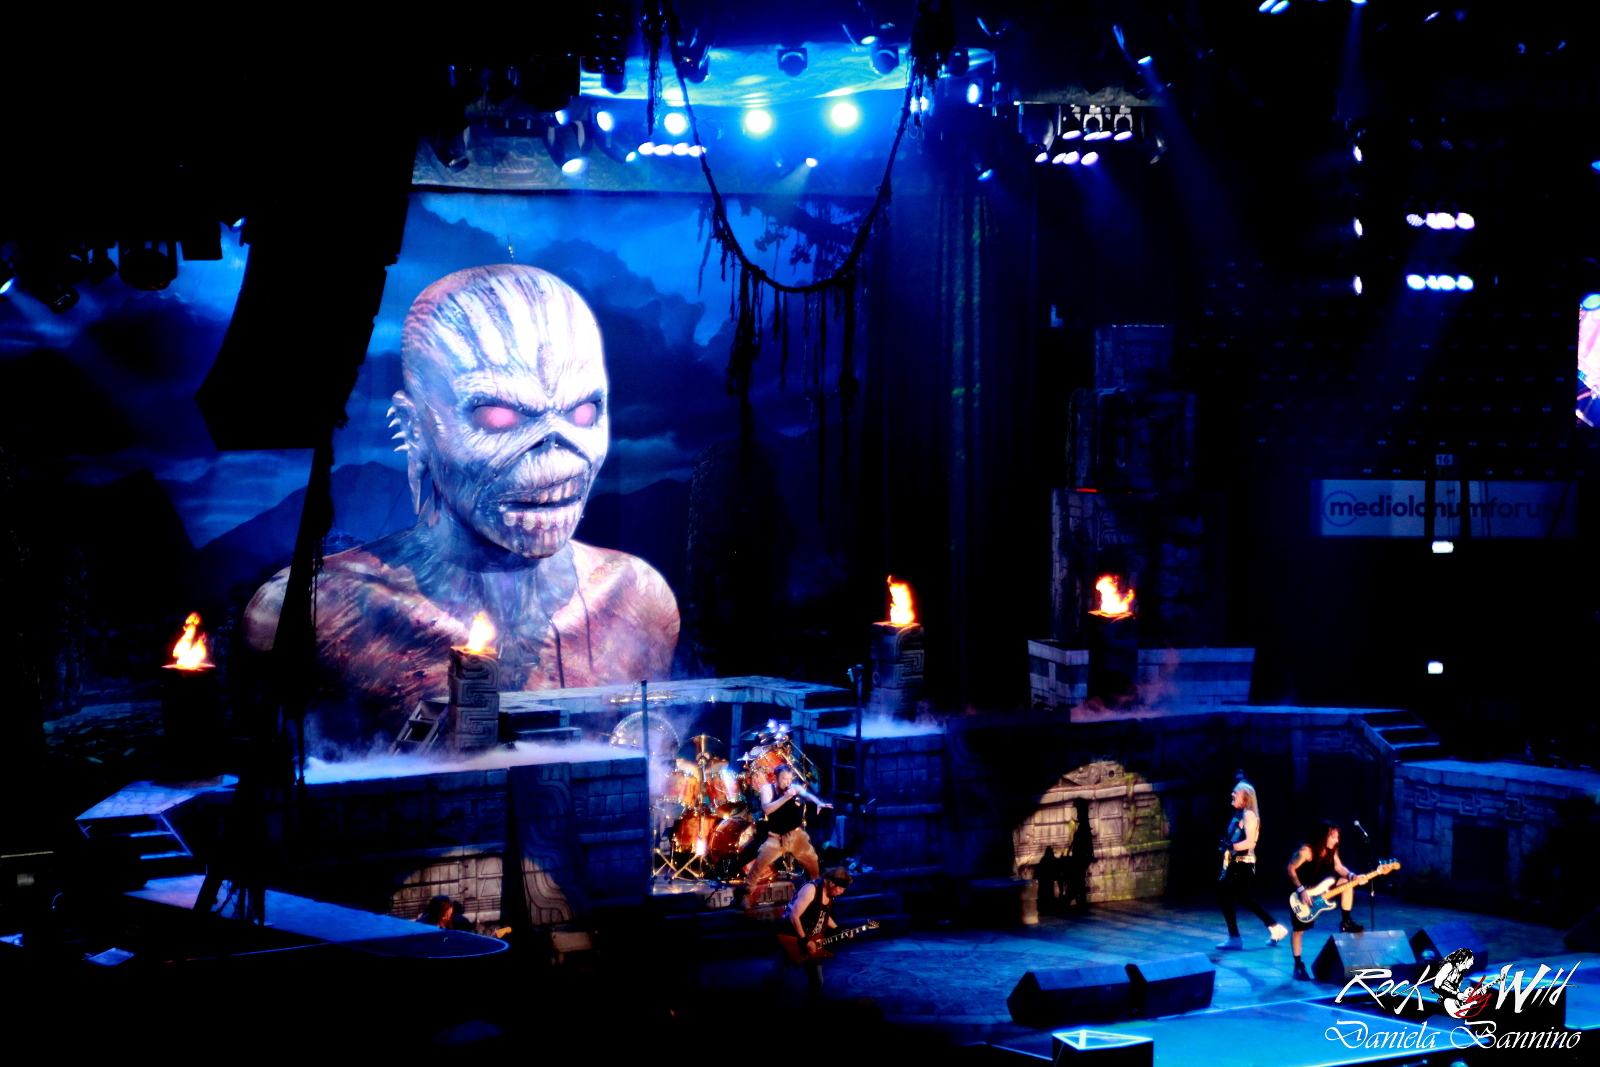 Iron Maiden @ Mediolanum Forum - 22 07 2016